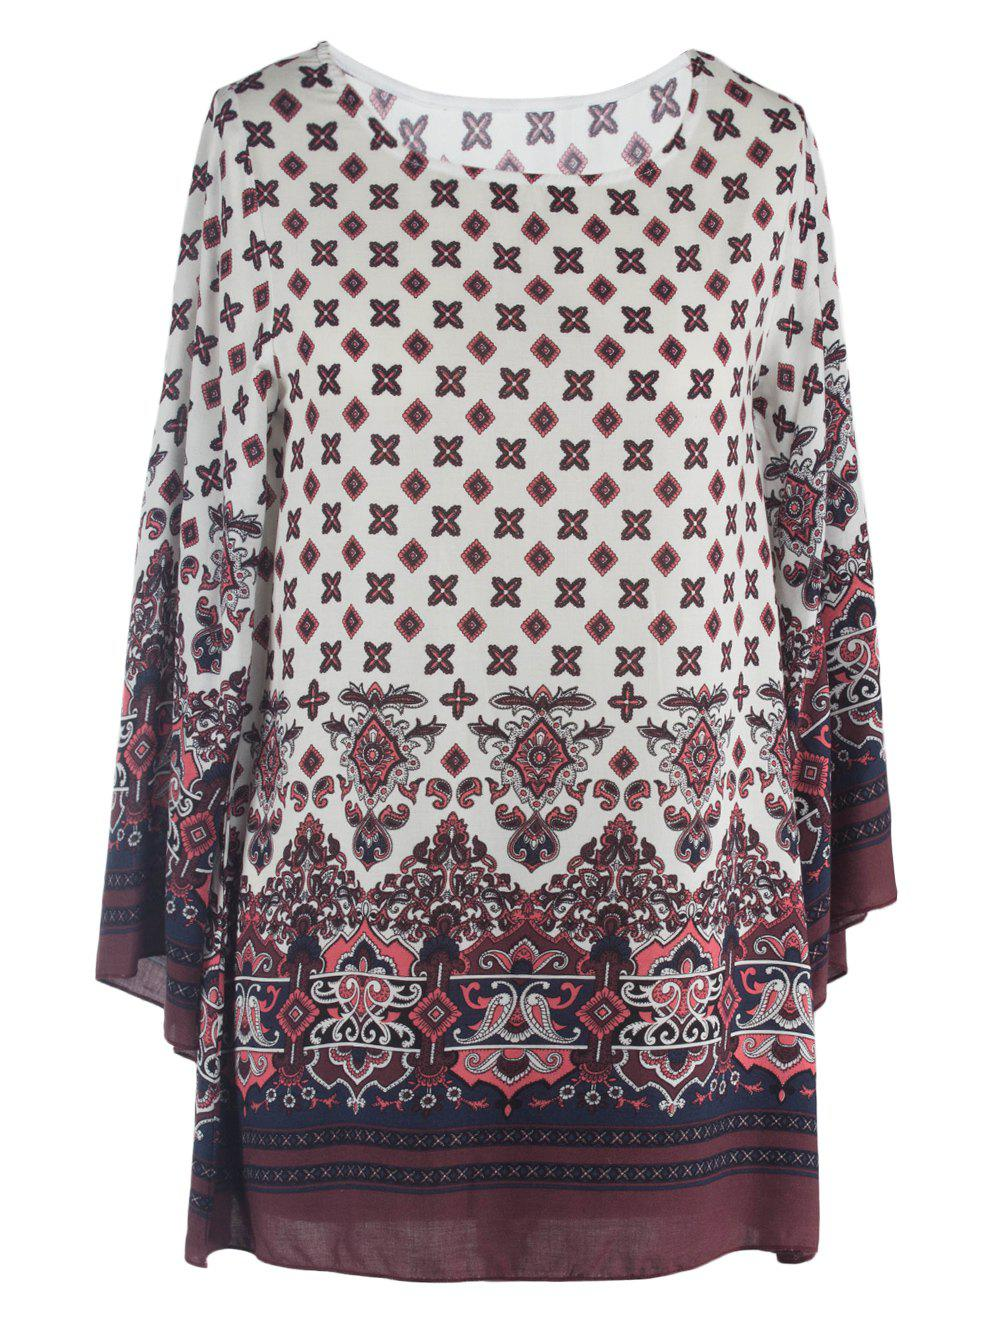 Ethnic Style Ornate Printed Loose-Fitting Women's Dress - WHITE 2XL